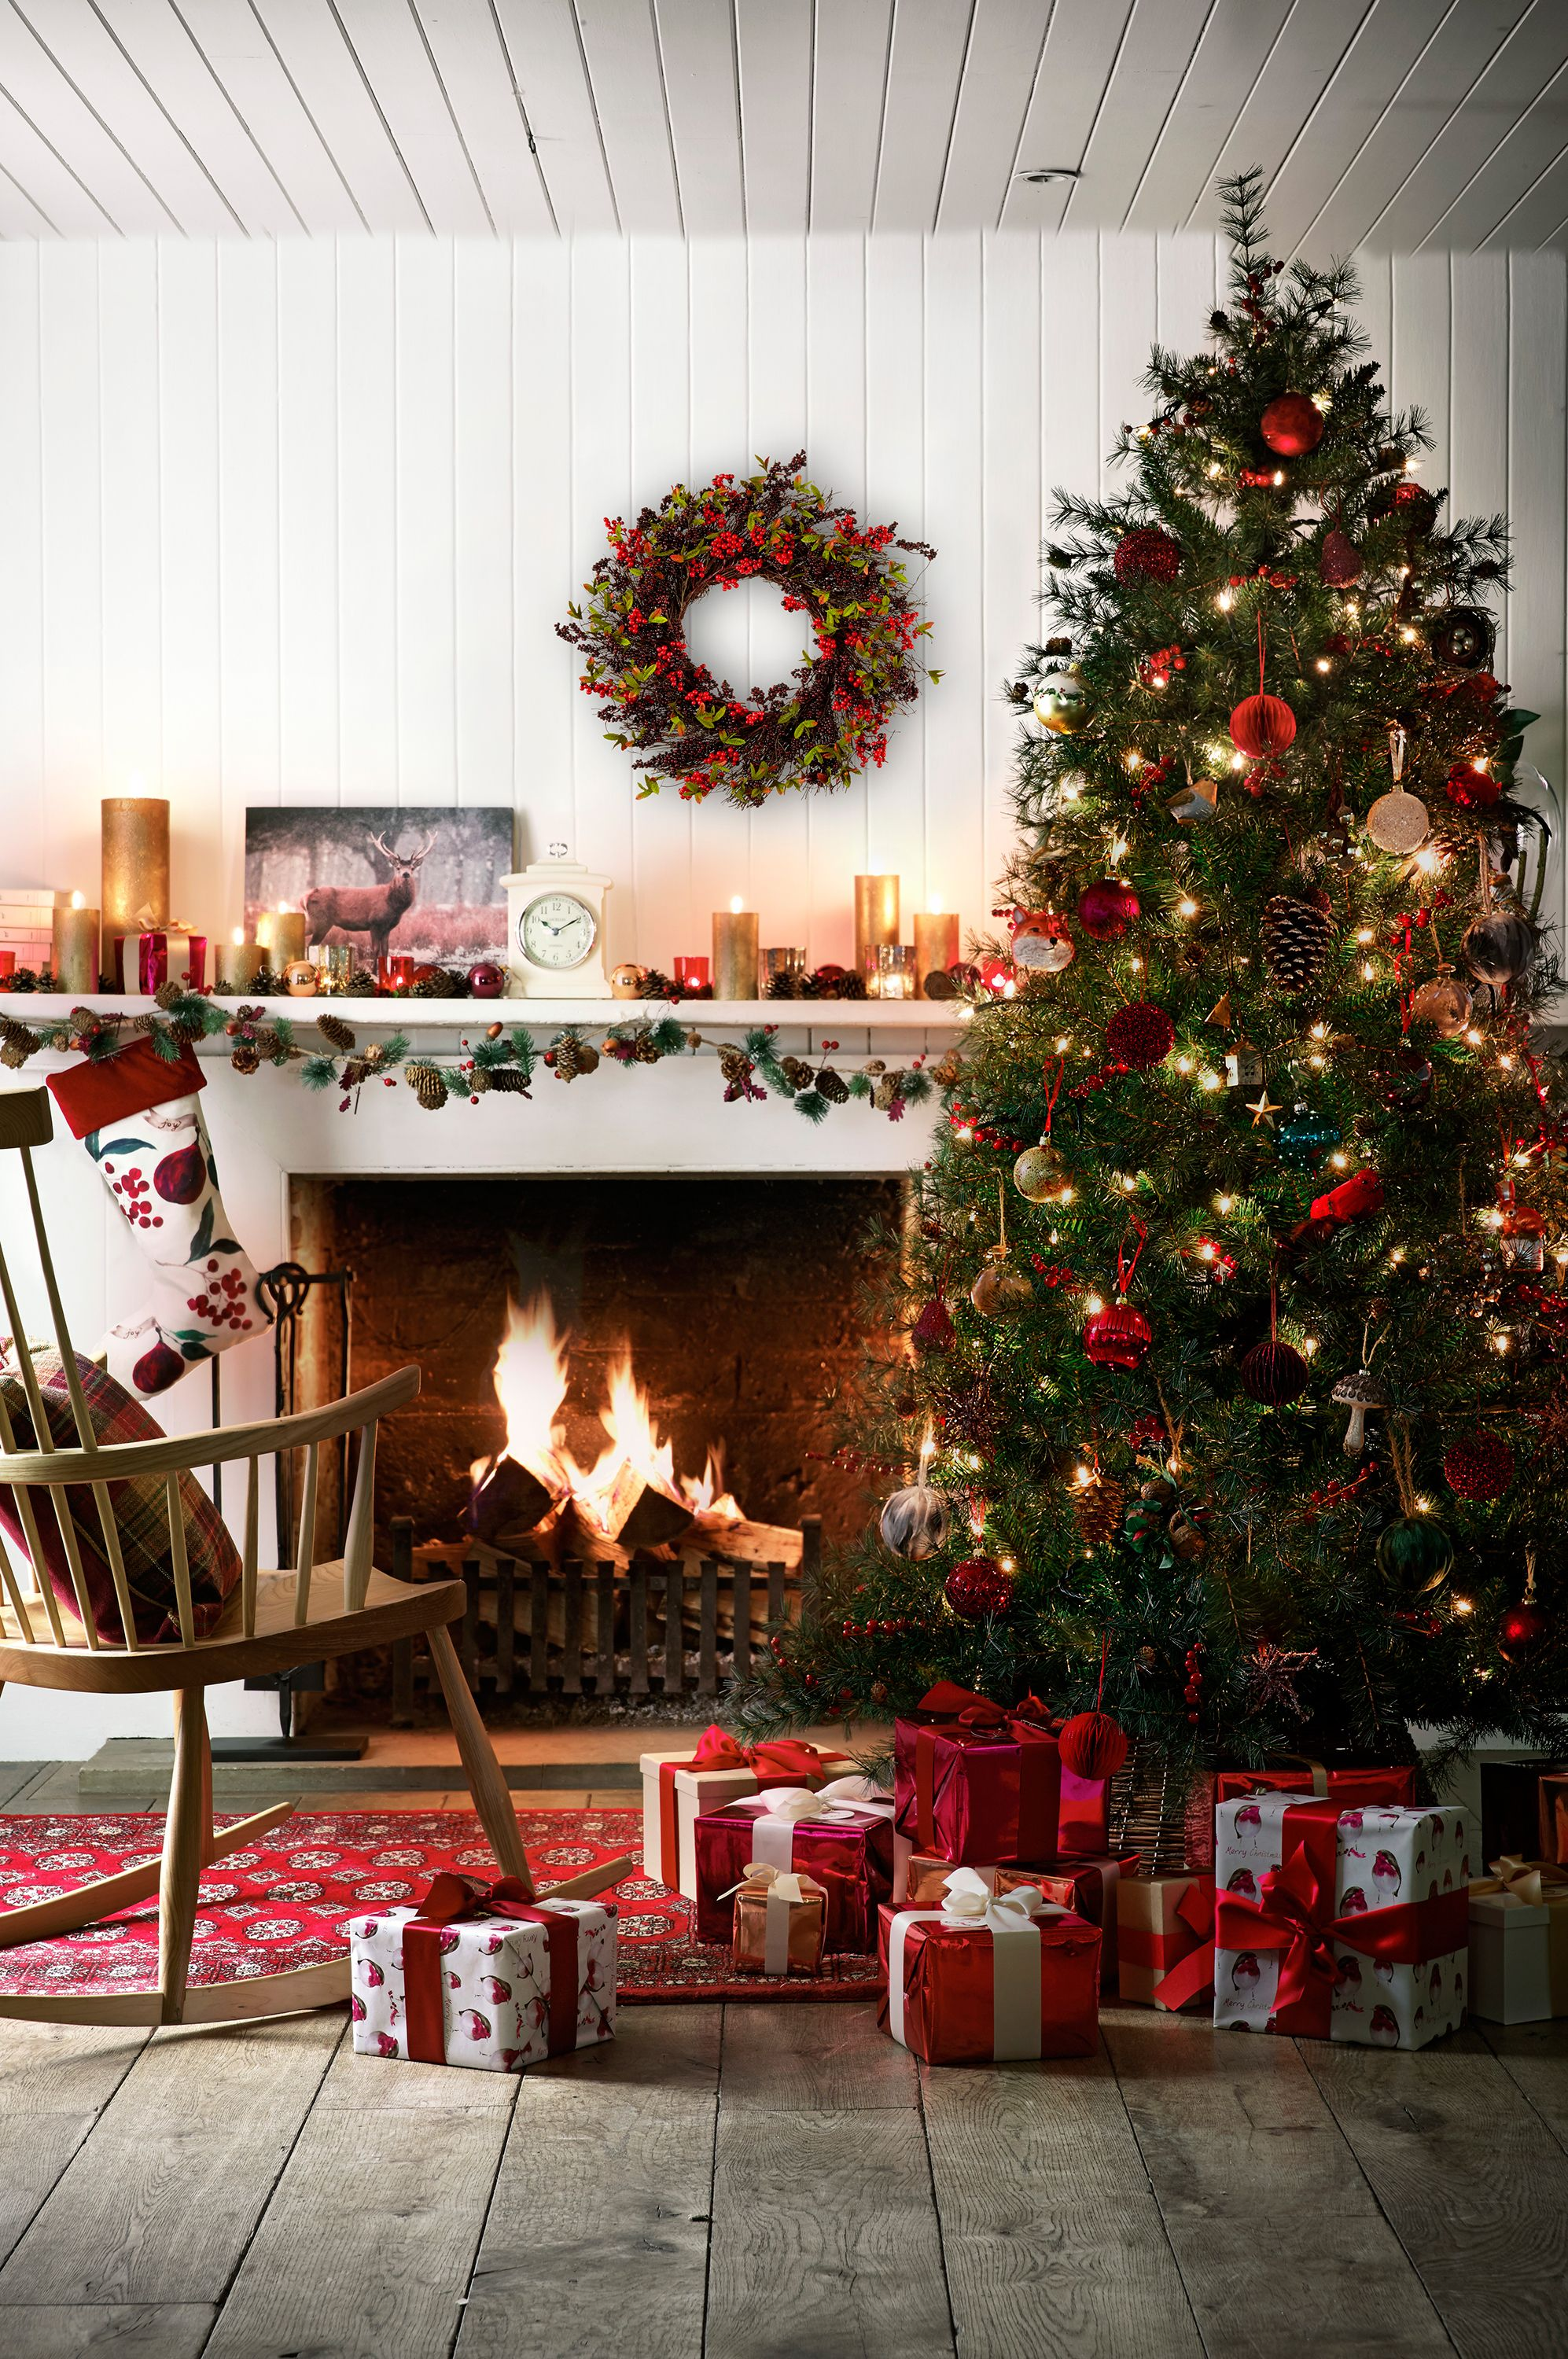 How to decorate your home for christmas - Decorate Your Home This Christmas With John Lewis And Add Some Sparkle To Your Tree